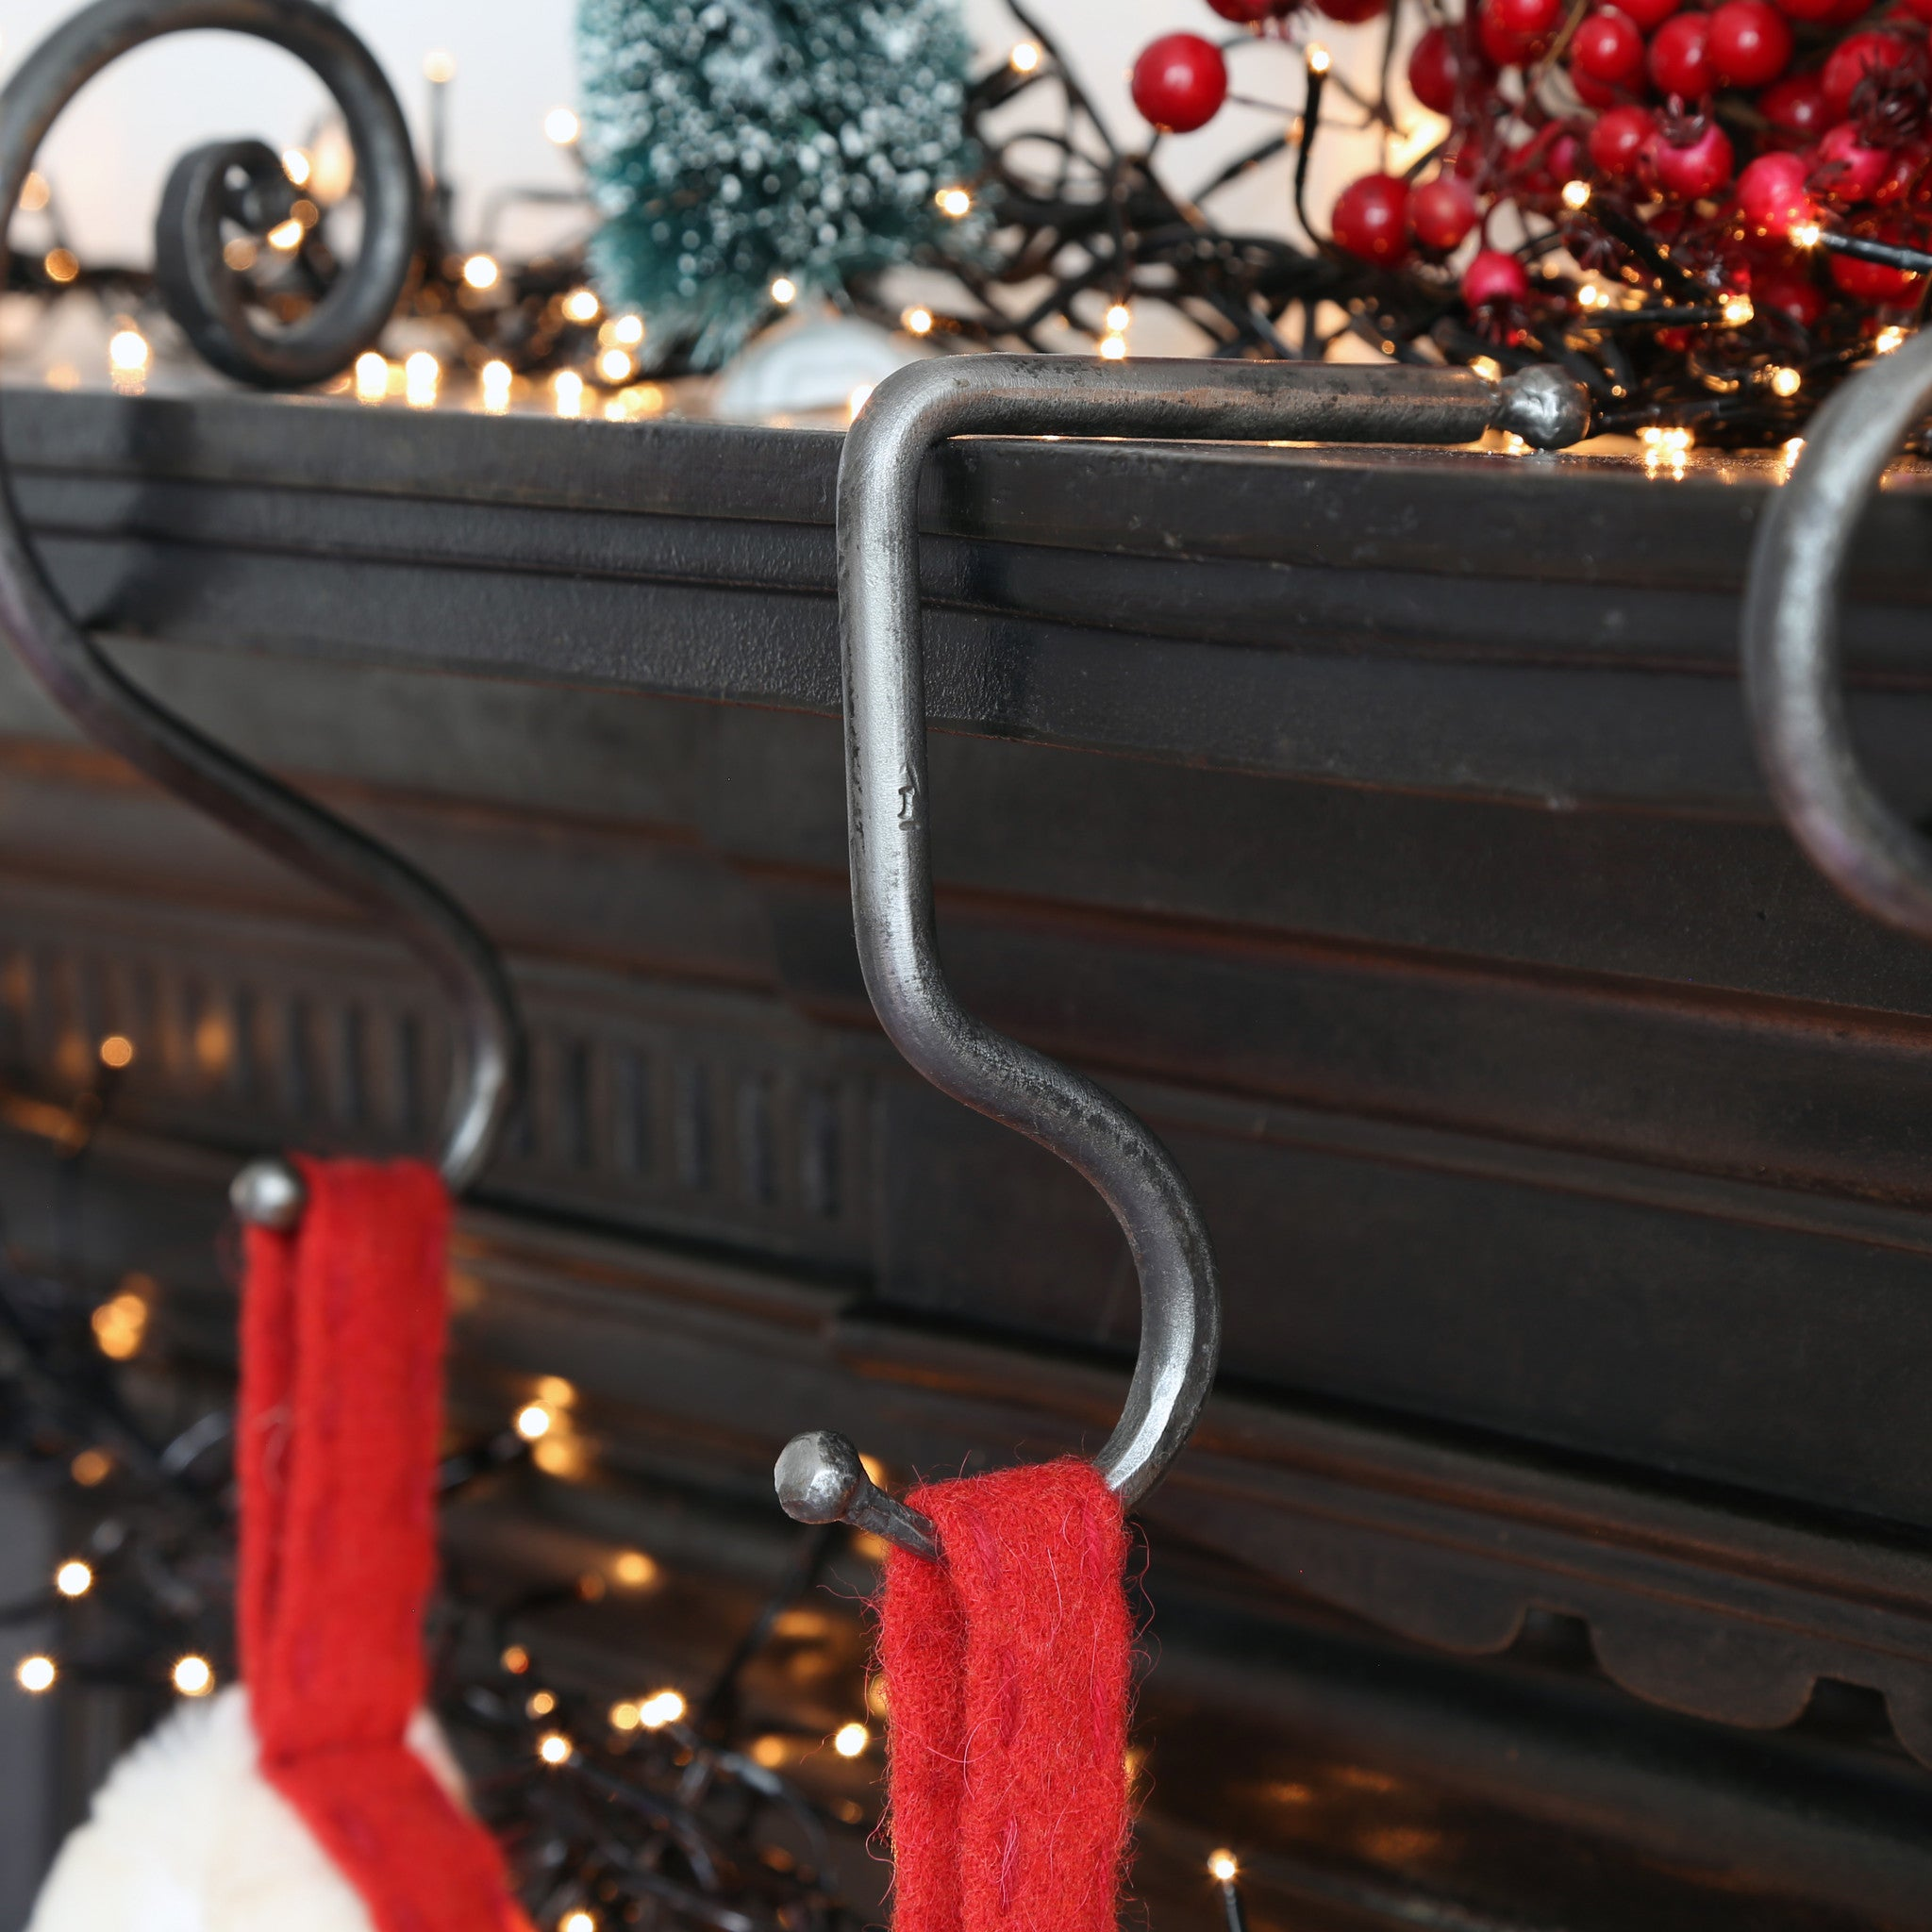 ways fireplace brick stocking wikihow on step stockings to holders hang